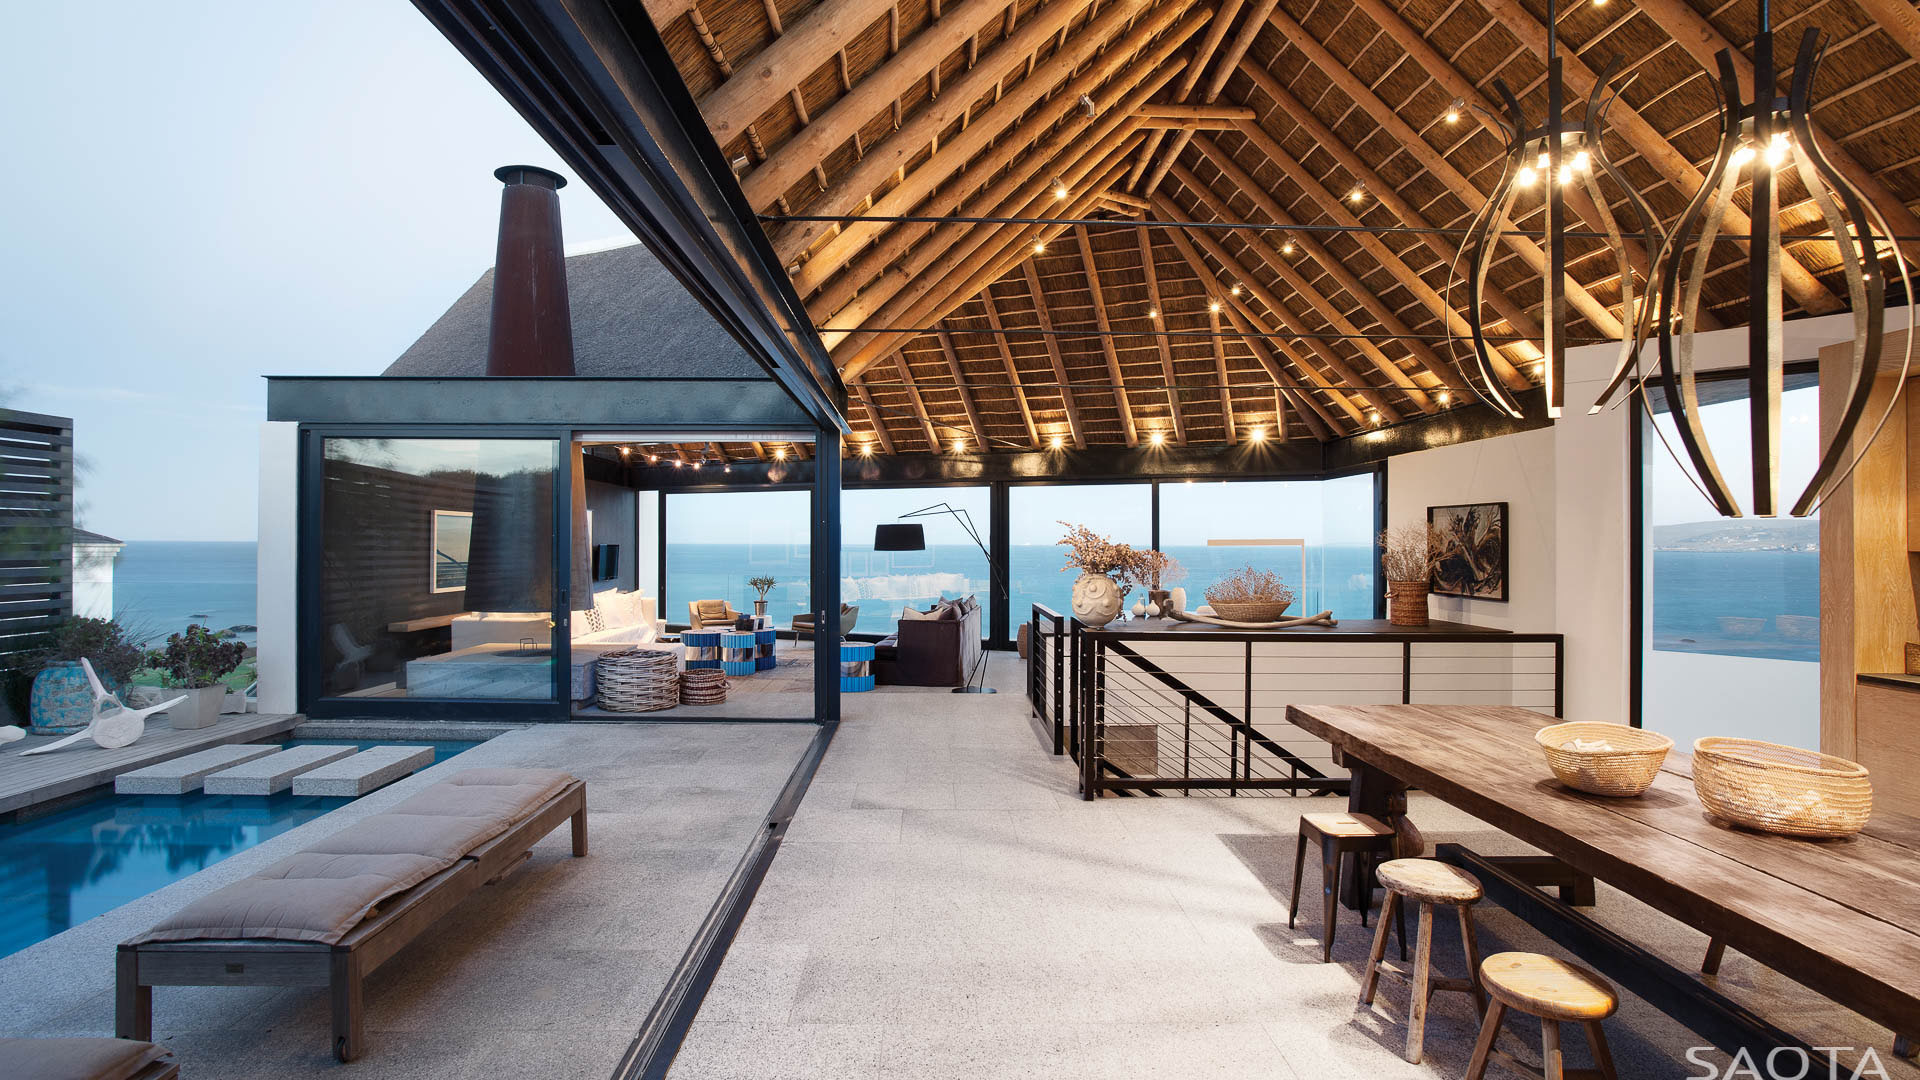 ocean view contemporary luxury home with thatched roof idesignarch interior design. Black Bedroom Furniture Sets. Home Design Ideas